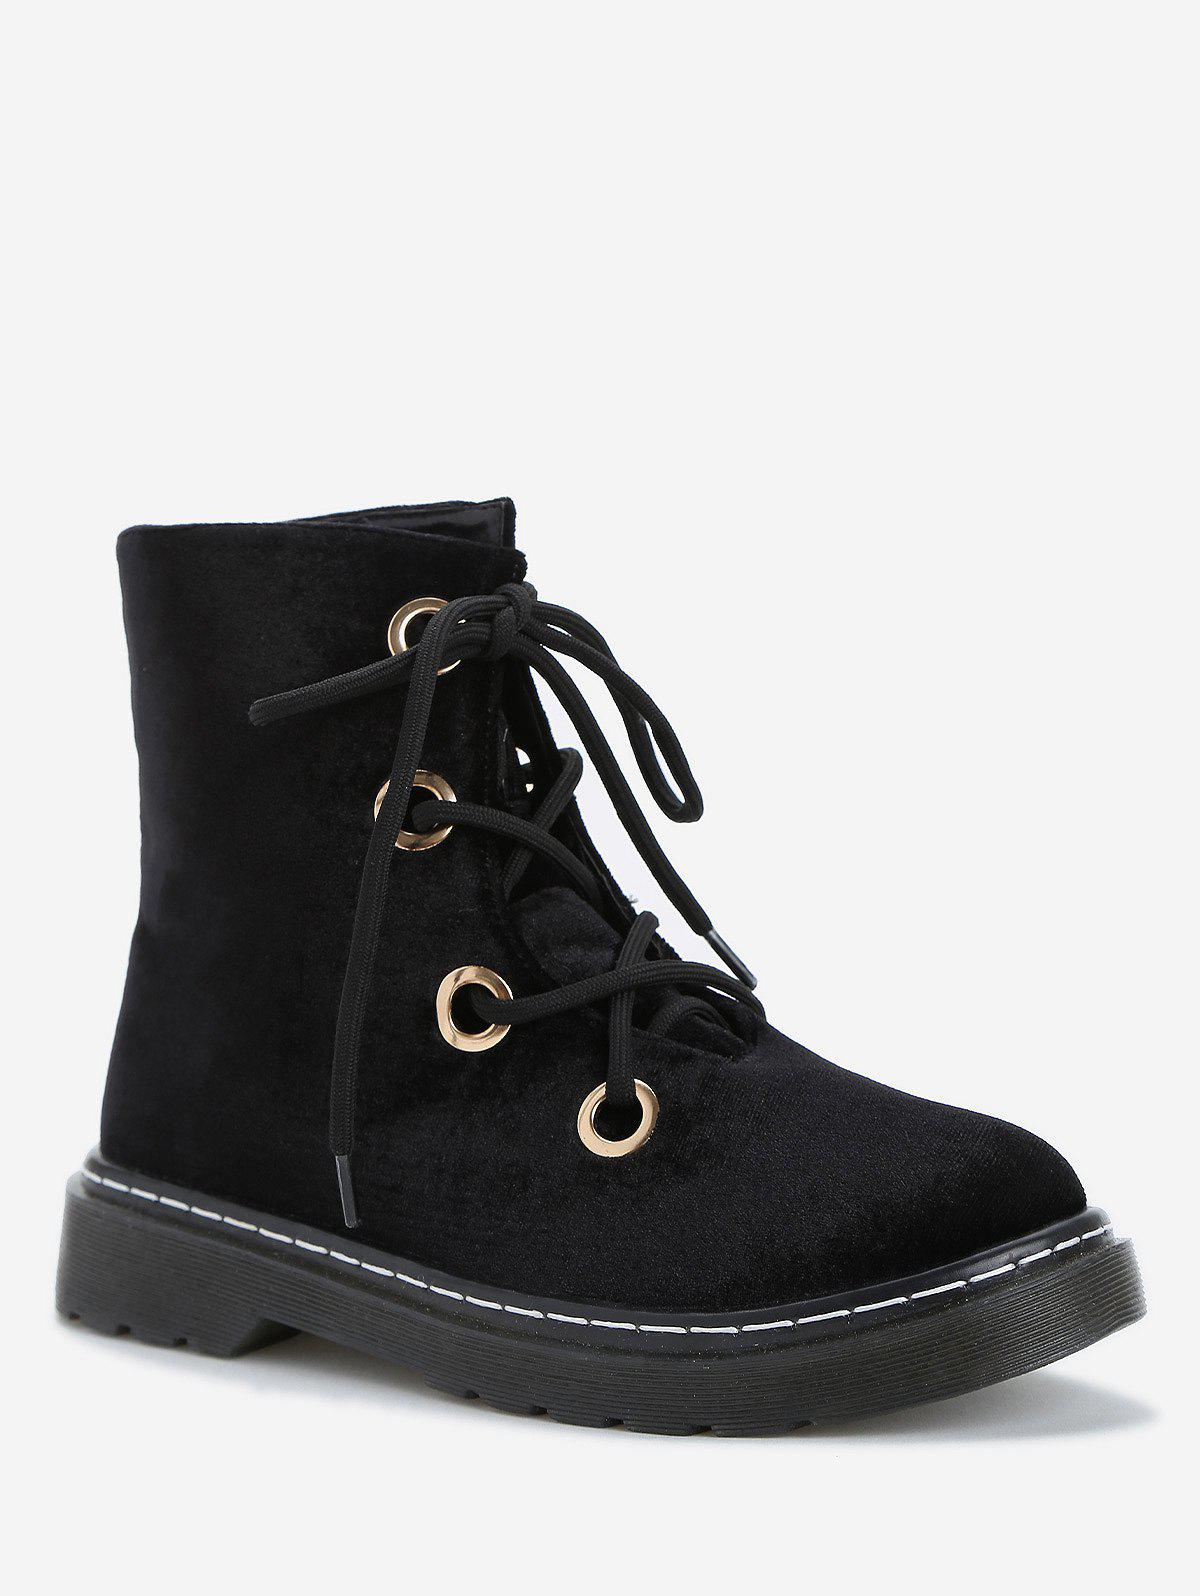 Hot Chic Low Heel Lace Up Ankle Boots